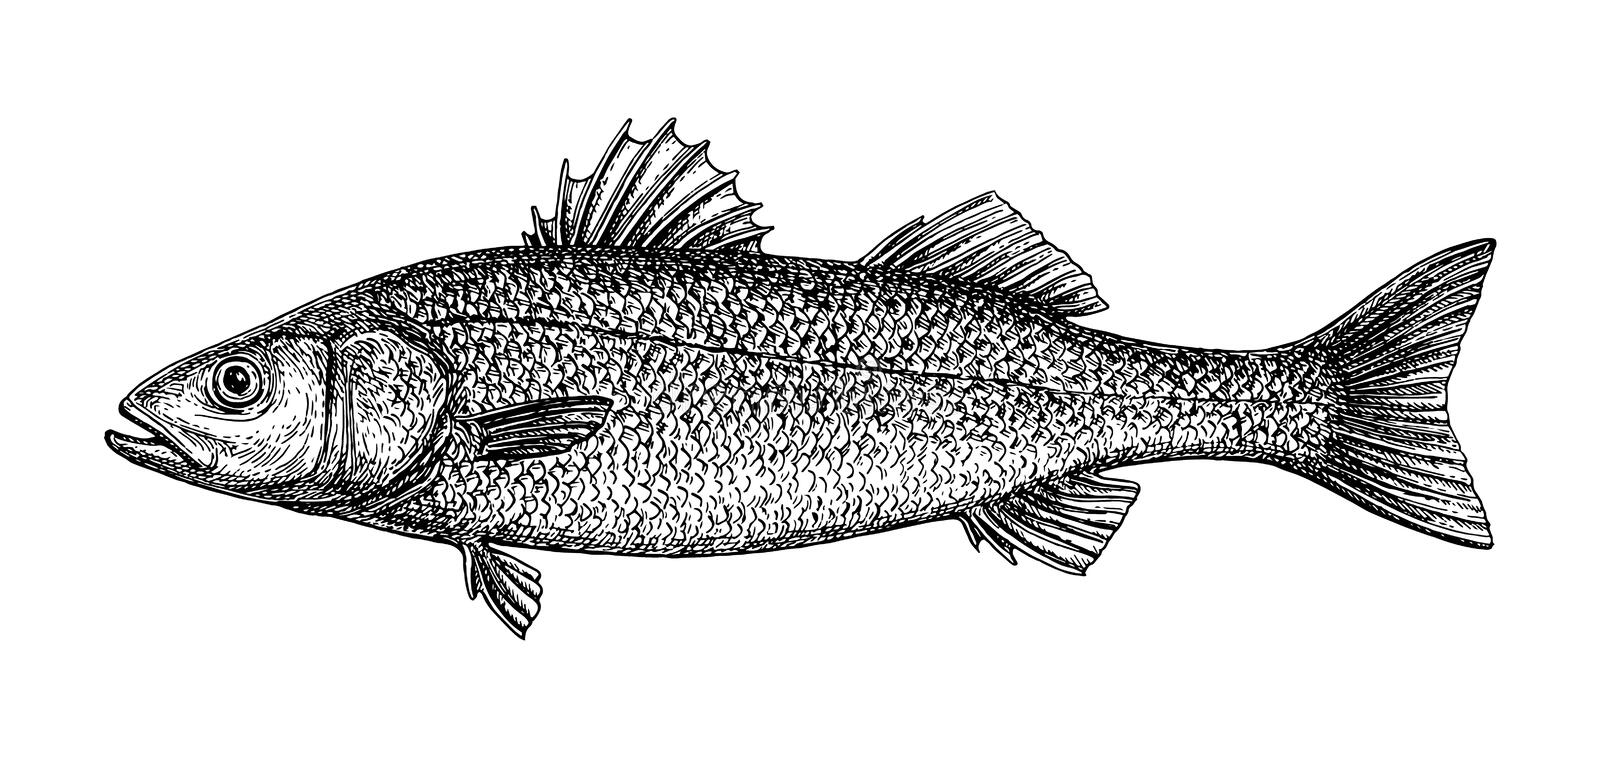 Ink sketch of European bass. Ink sketch of sea bass. Hand drawn vector illustration of fish isolated on white background. Retro style vector illustration